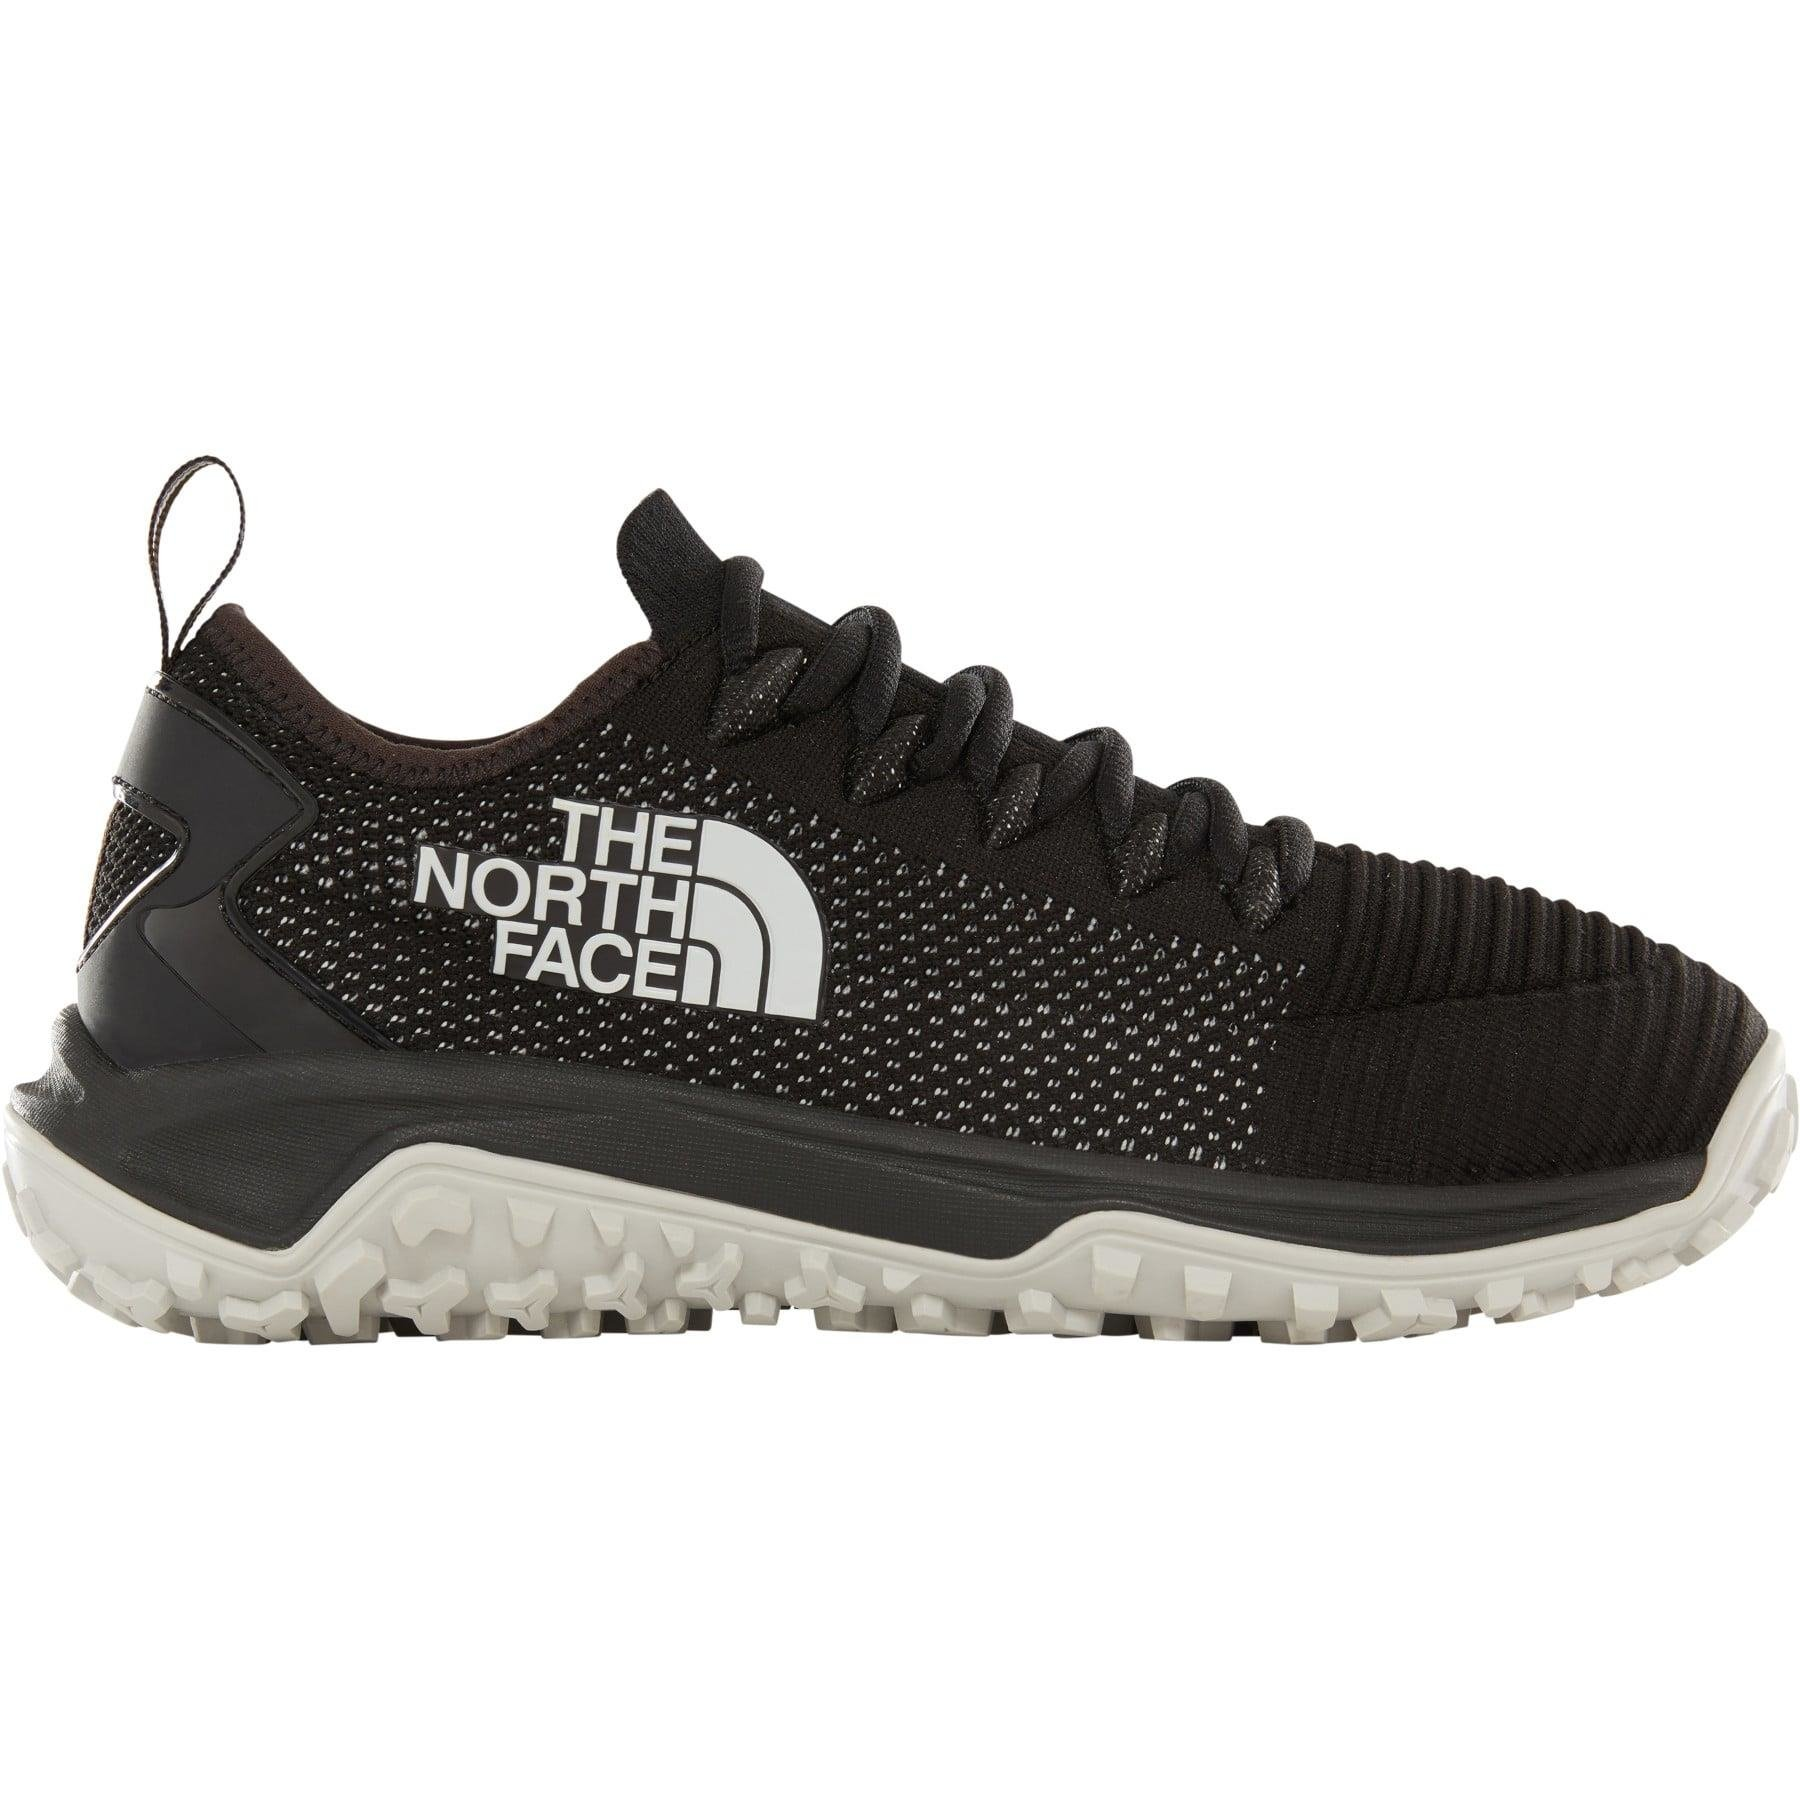 Damskie buty The North Face Truxel T93WZECA5